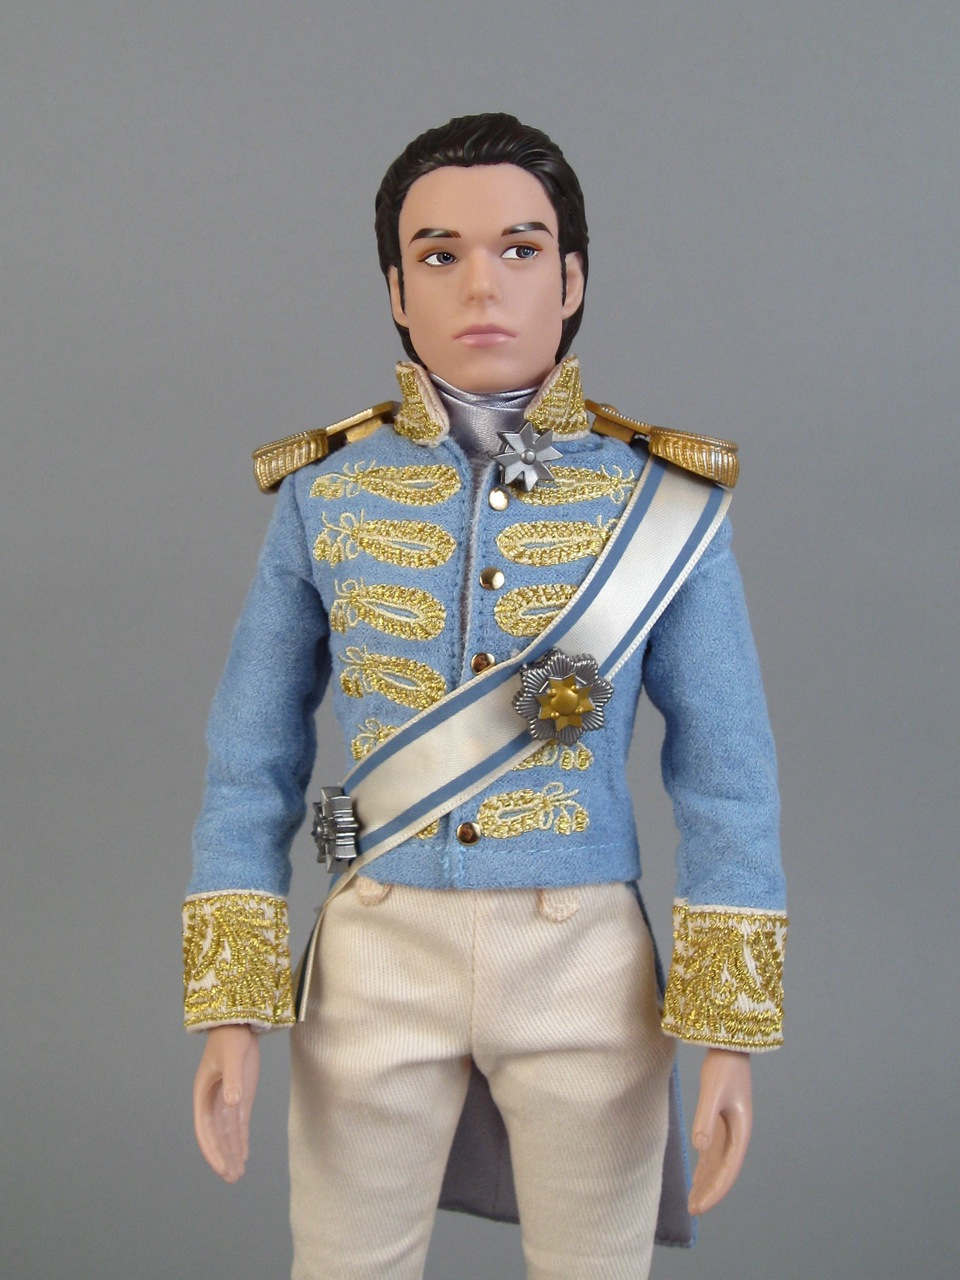 Disney Store's Prince Charming doll